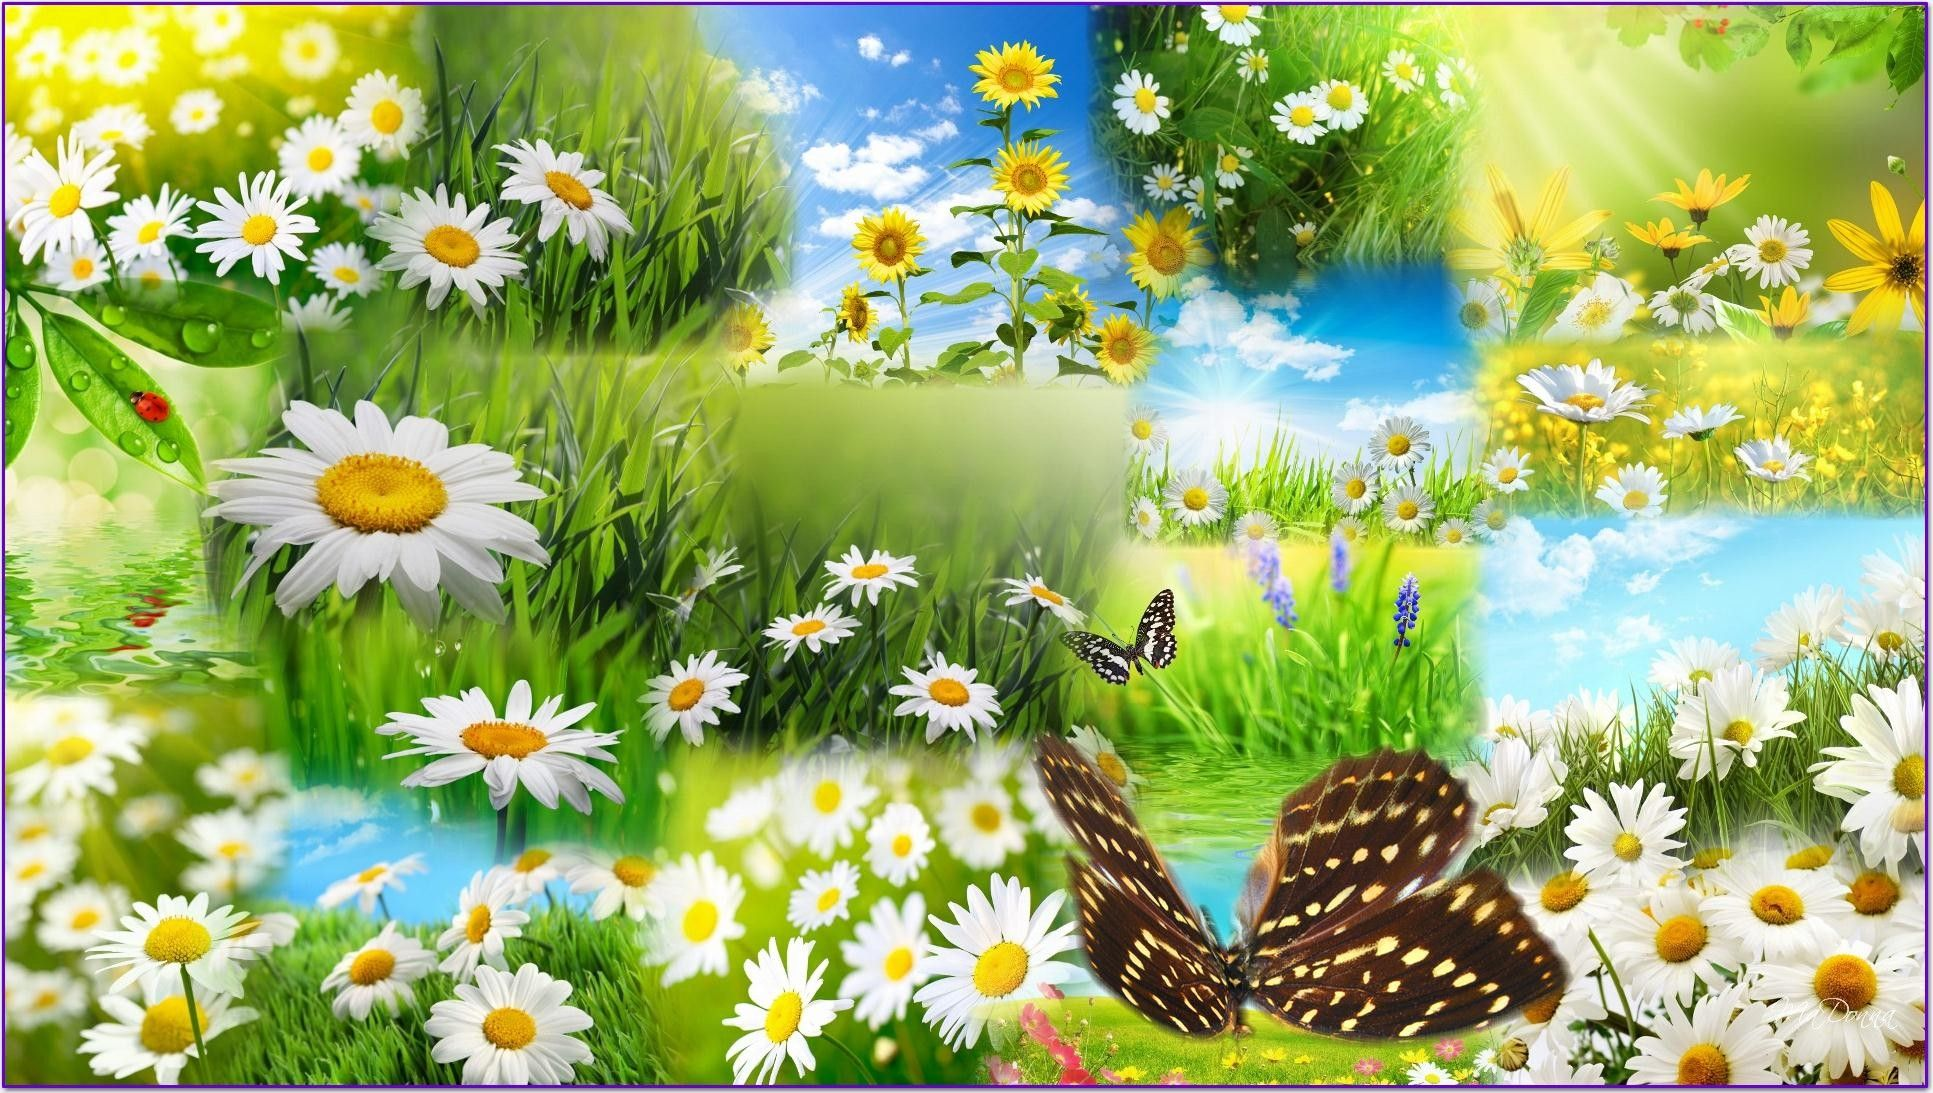 Flowers and Butterflies Spring Wallpapers - HD Wallpapers Pop